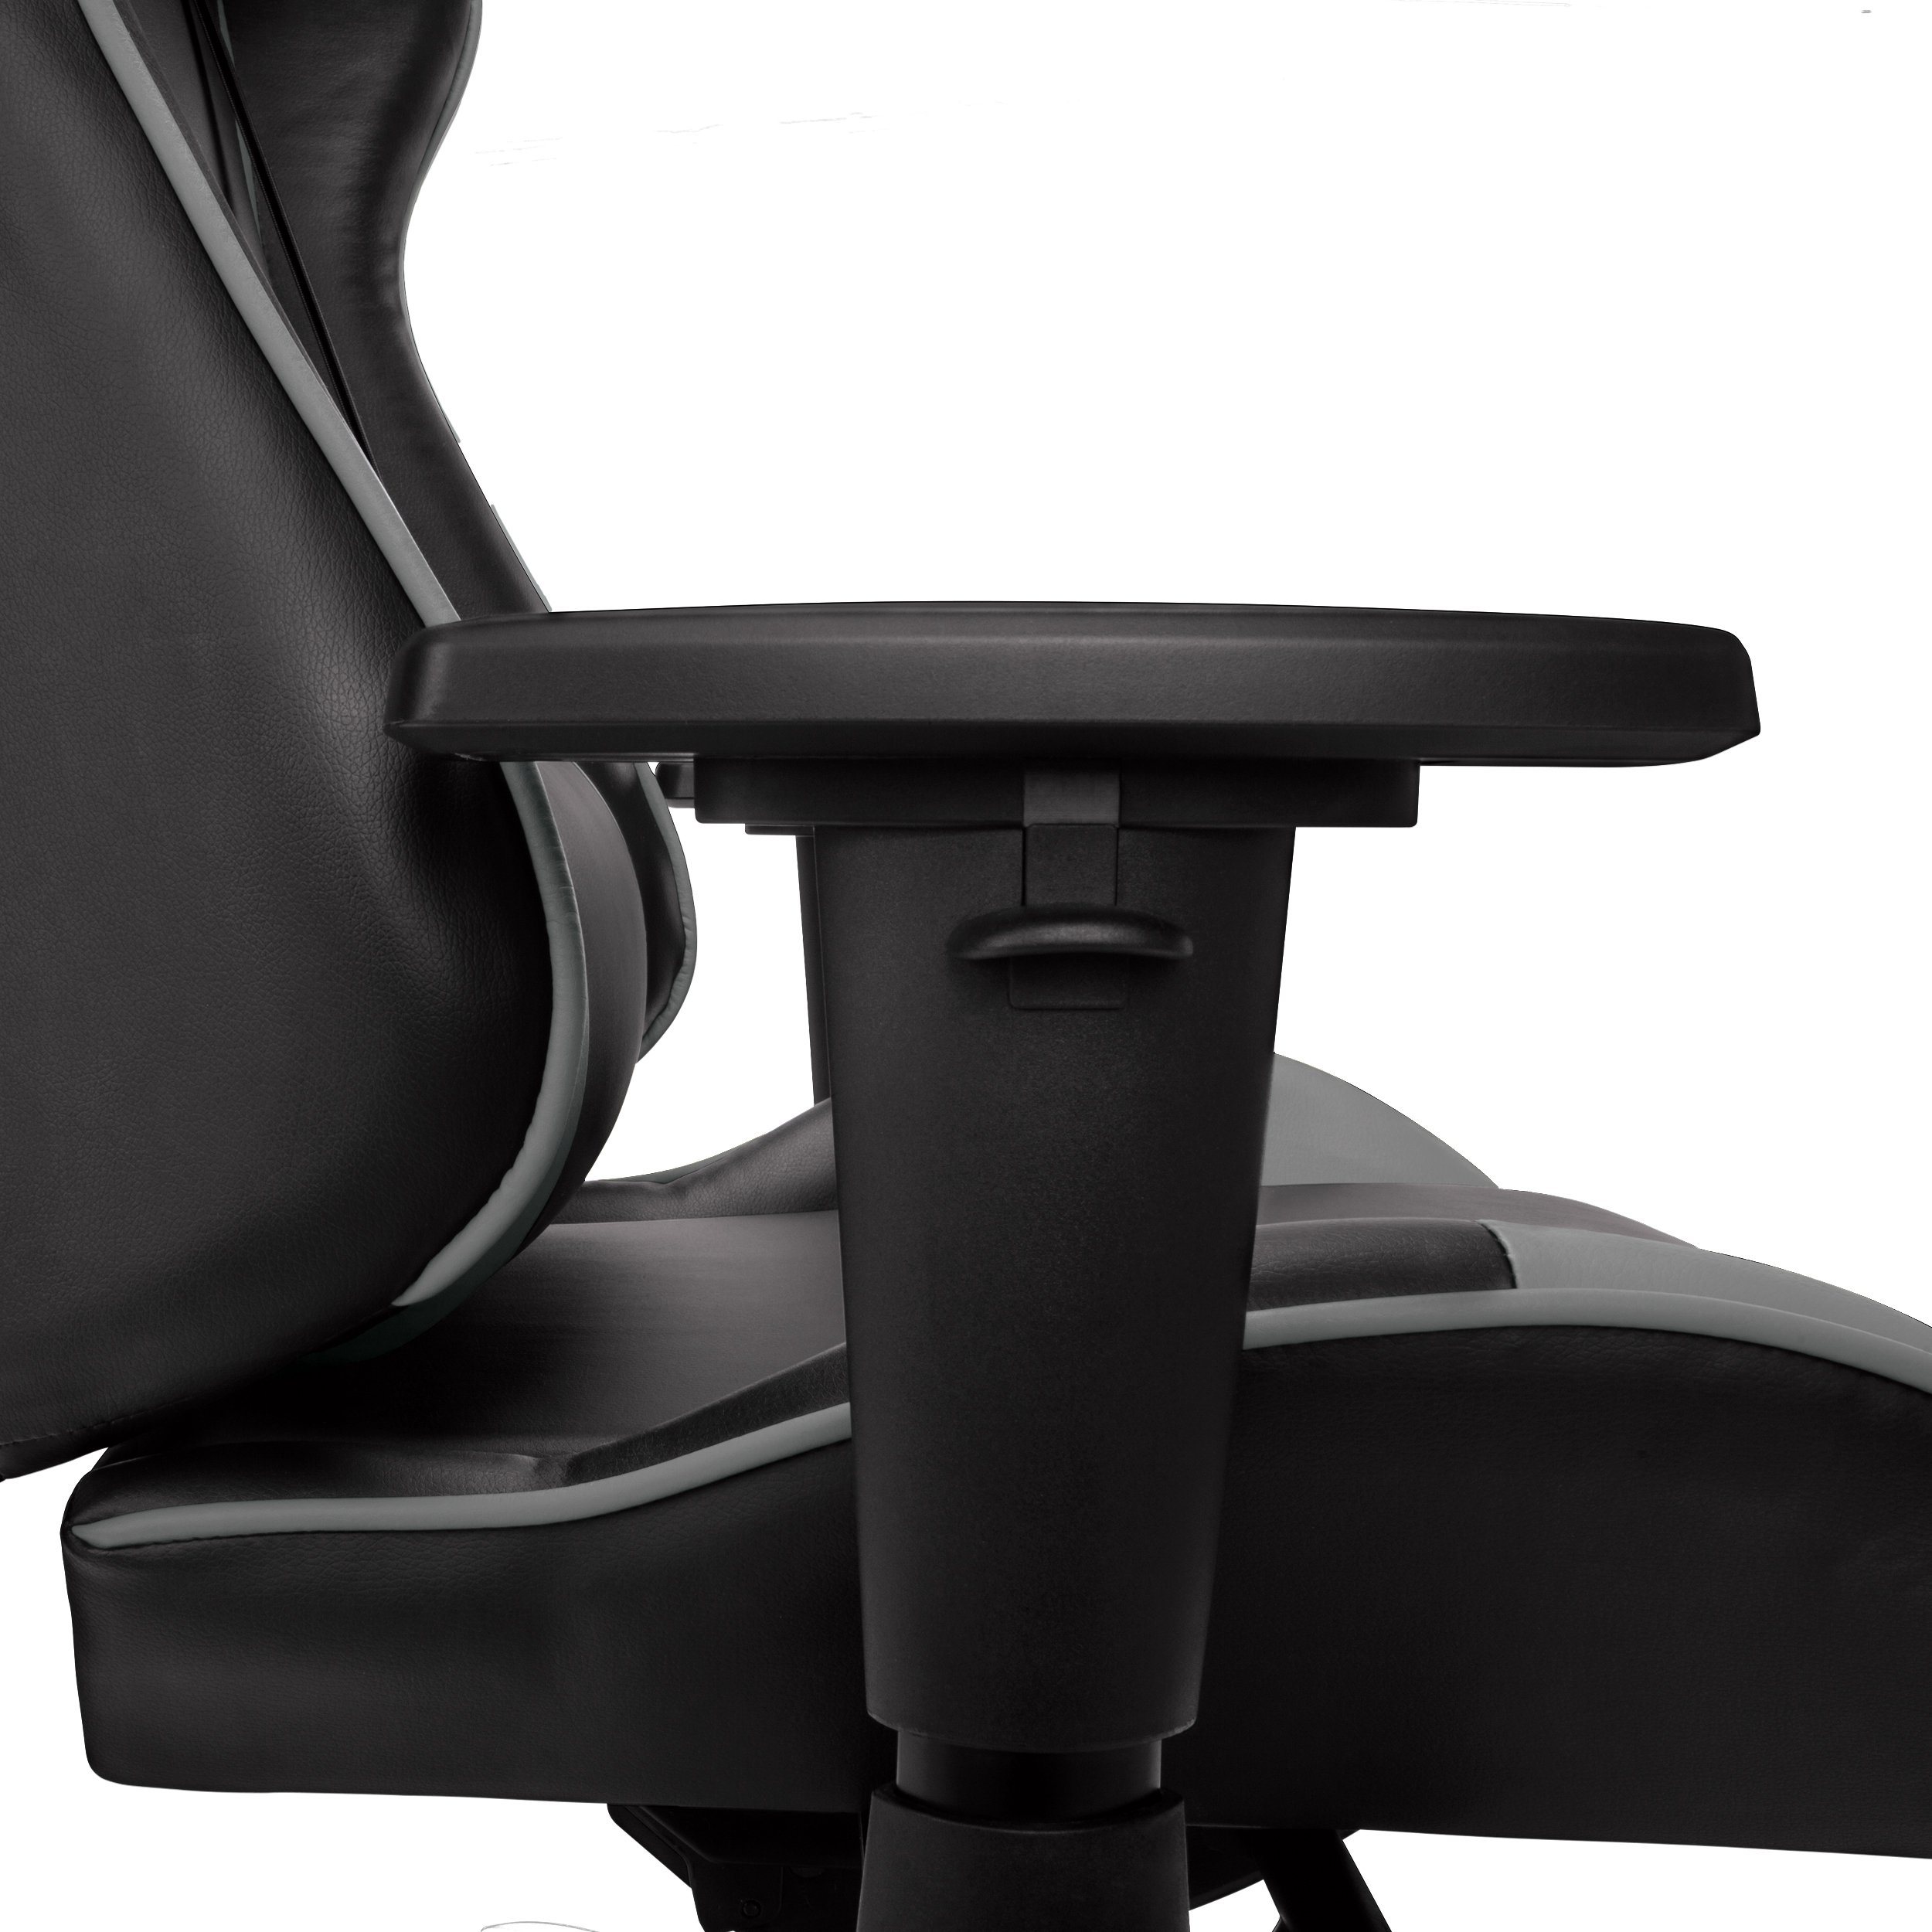 RESPAWN-105 Racing Style Gaming Chair - Reclining Ergonomic Leather Chair, Office or Gaming Chair (RSP-105-GRY) by RESPAWN (Image #5)